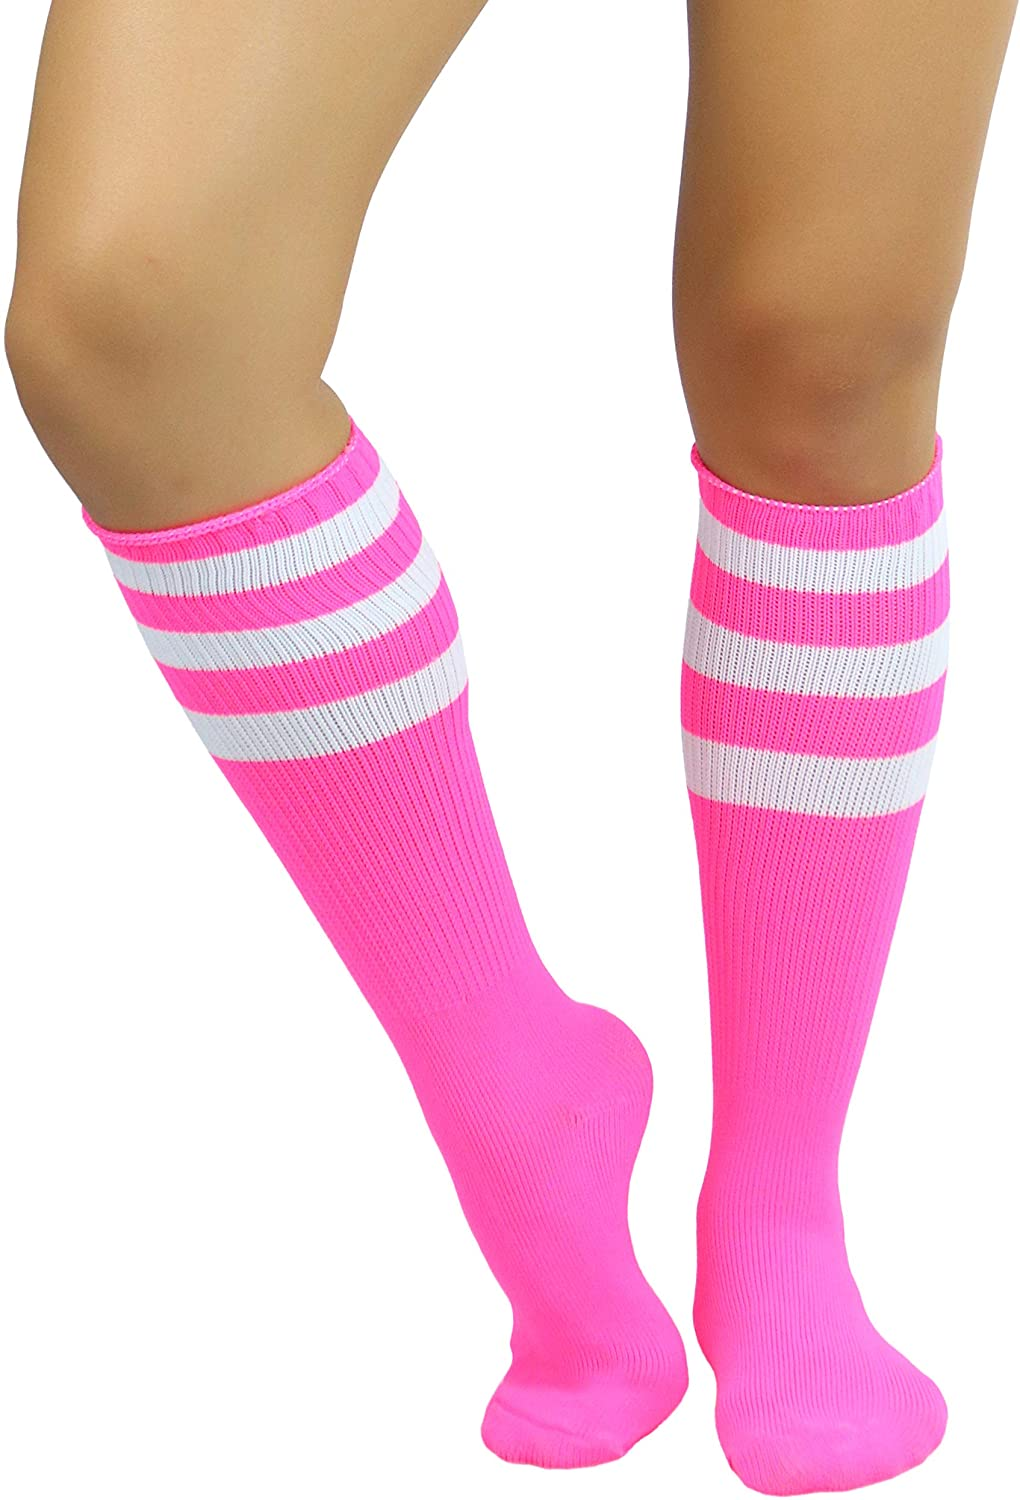 Vintage Socks | 1920s, 1930s, 1940s, 1950s, 1960s History ToBeInStyle Womens Premium Knee High Athletic Socks w/Contrasting Wide Stripes $11.95 AT vintagedancer.com